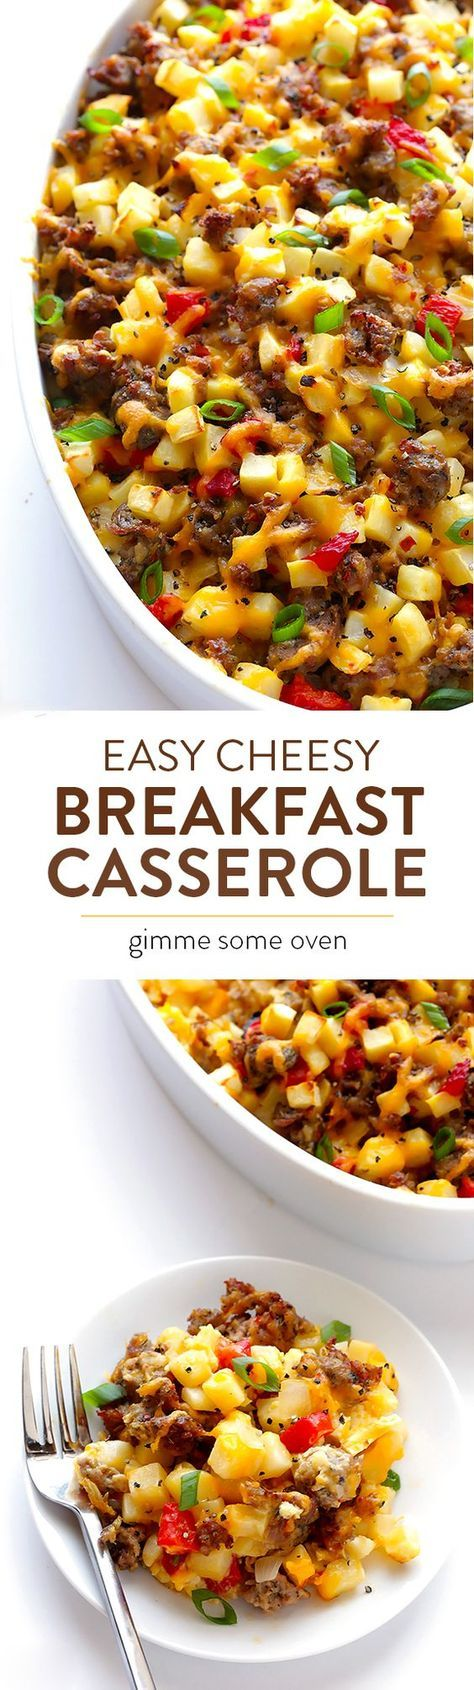 Easy Cheesy Breakfast Casserole -- full of sausage, eggs, potatoes, and always a crowd favorite!   gimmesomeoven.com